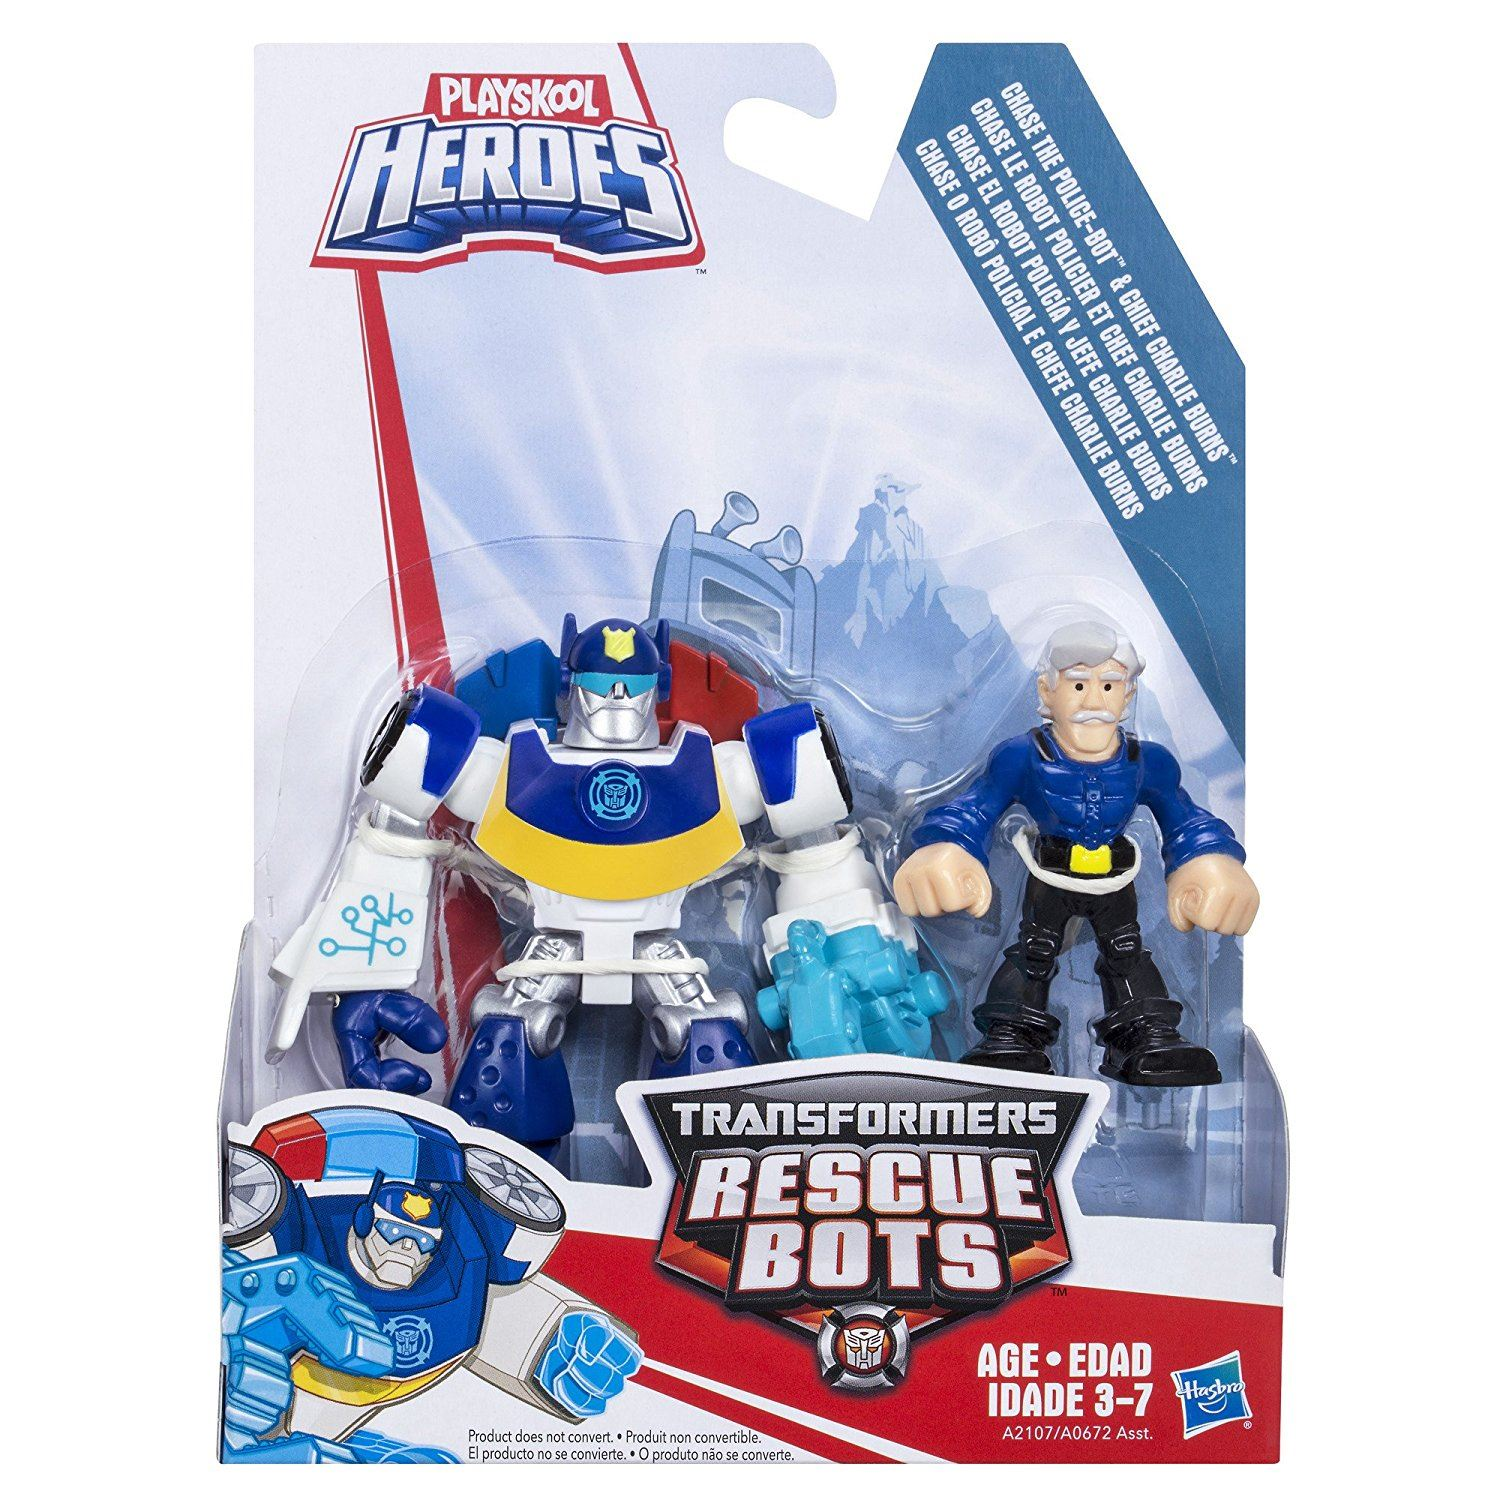 Target Transformers Toys For Boys : Playskool heroes transformers rescue bots chase the police